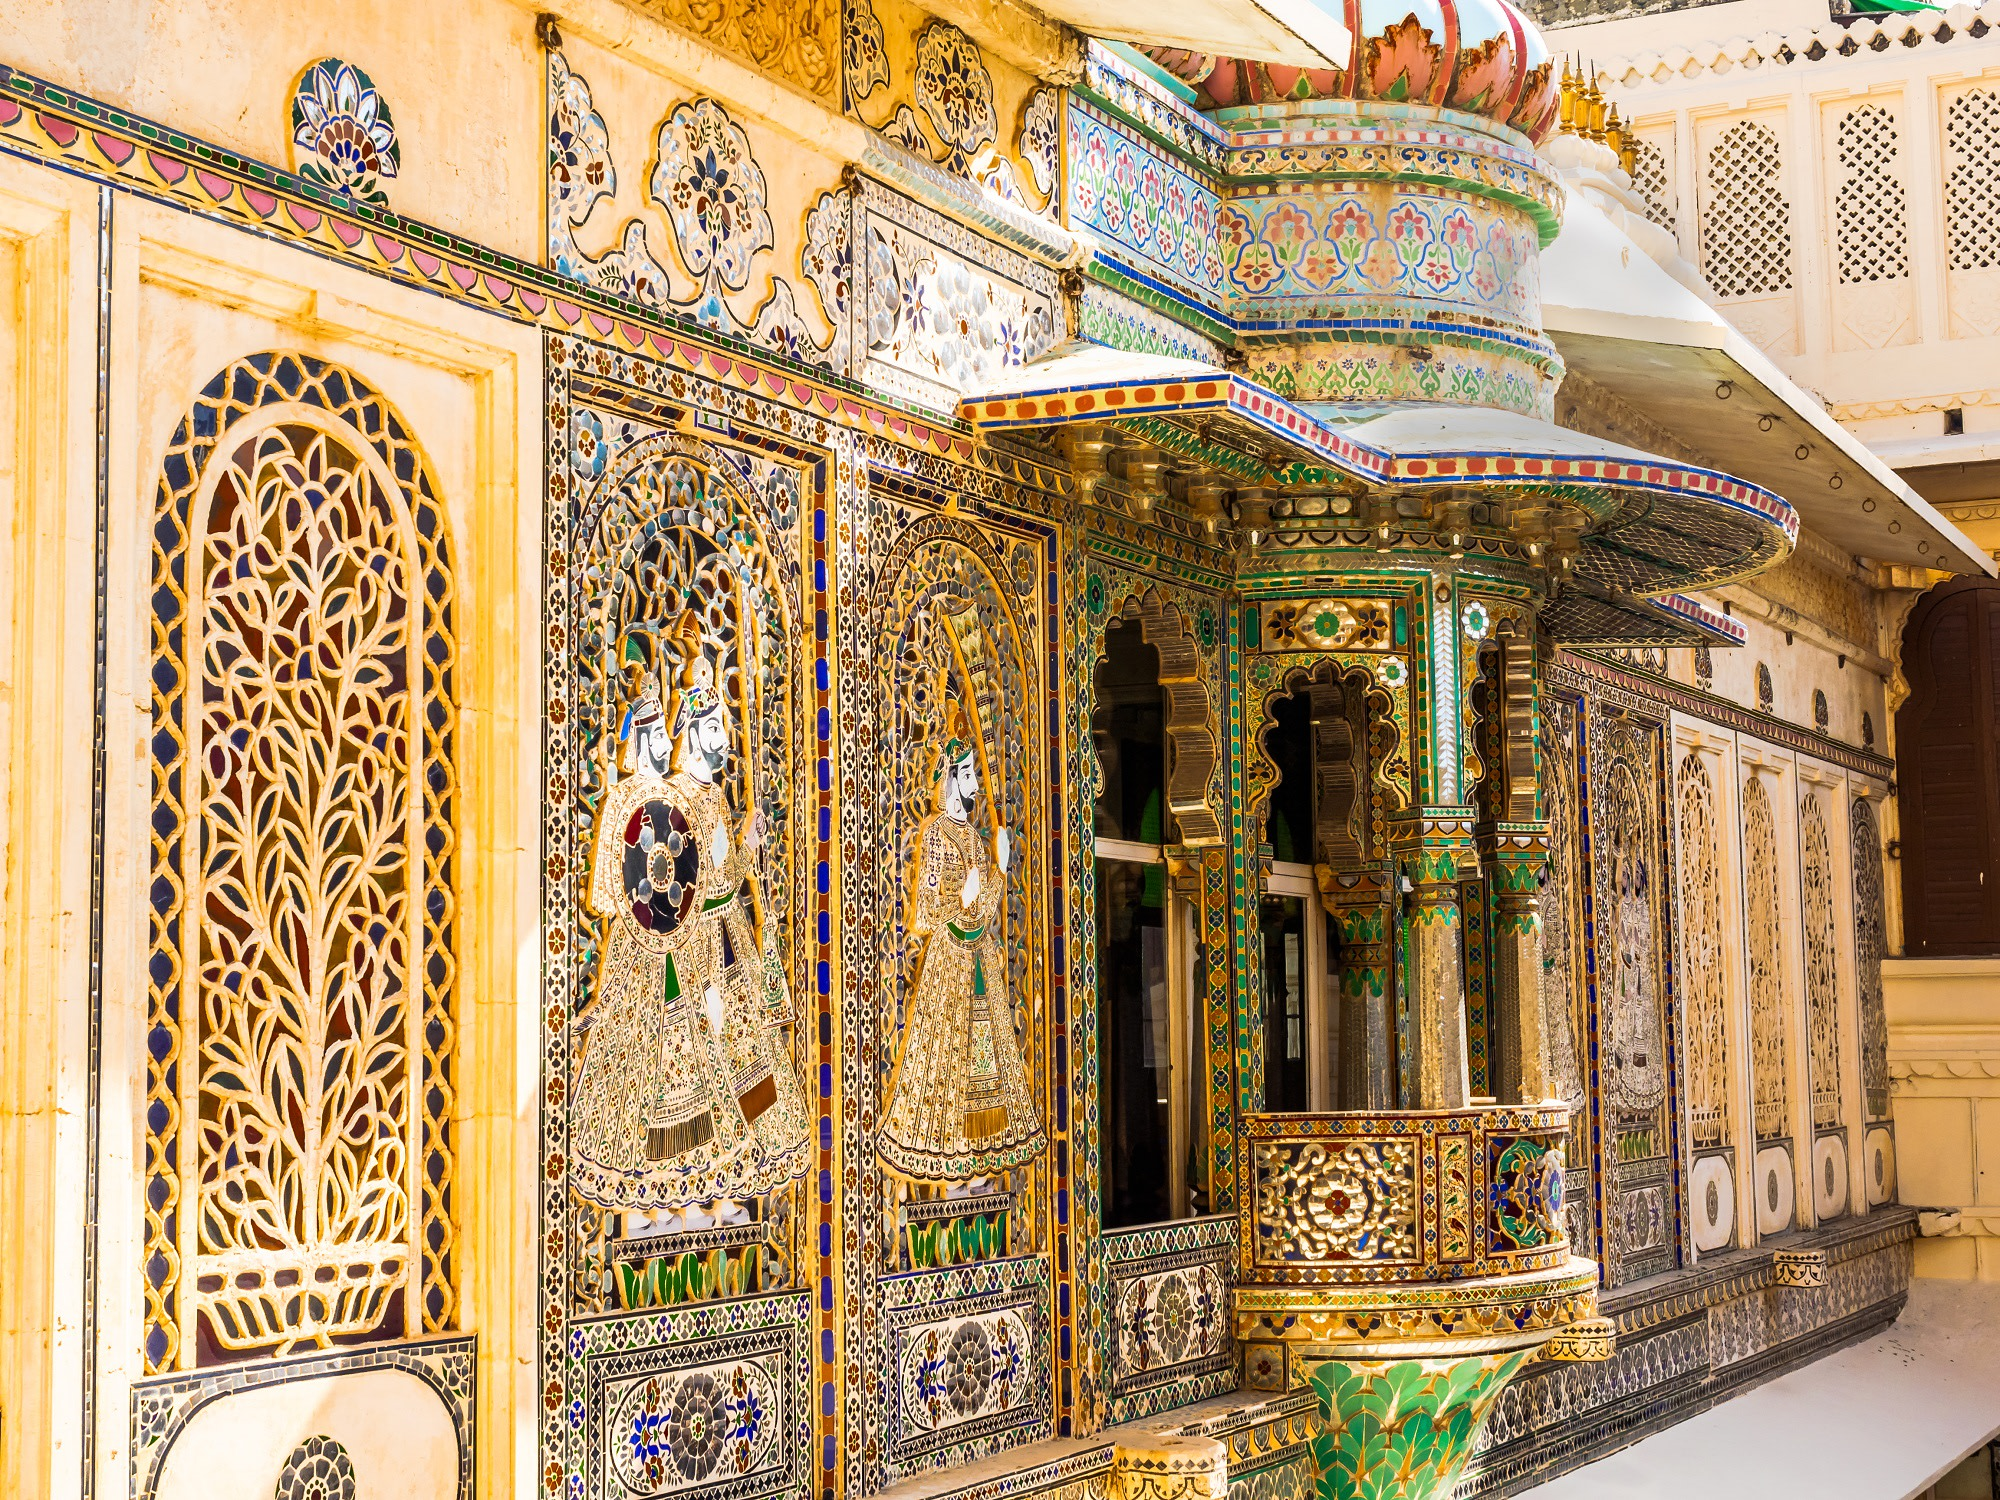 Inside Part of City Palace in Udaipur